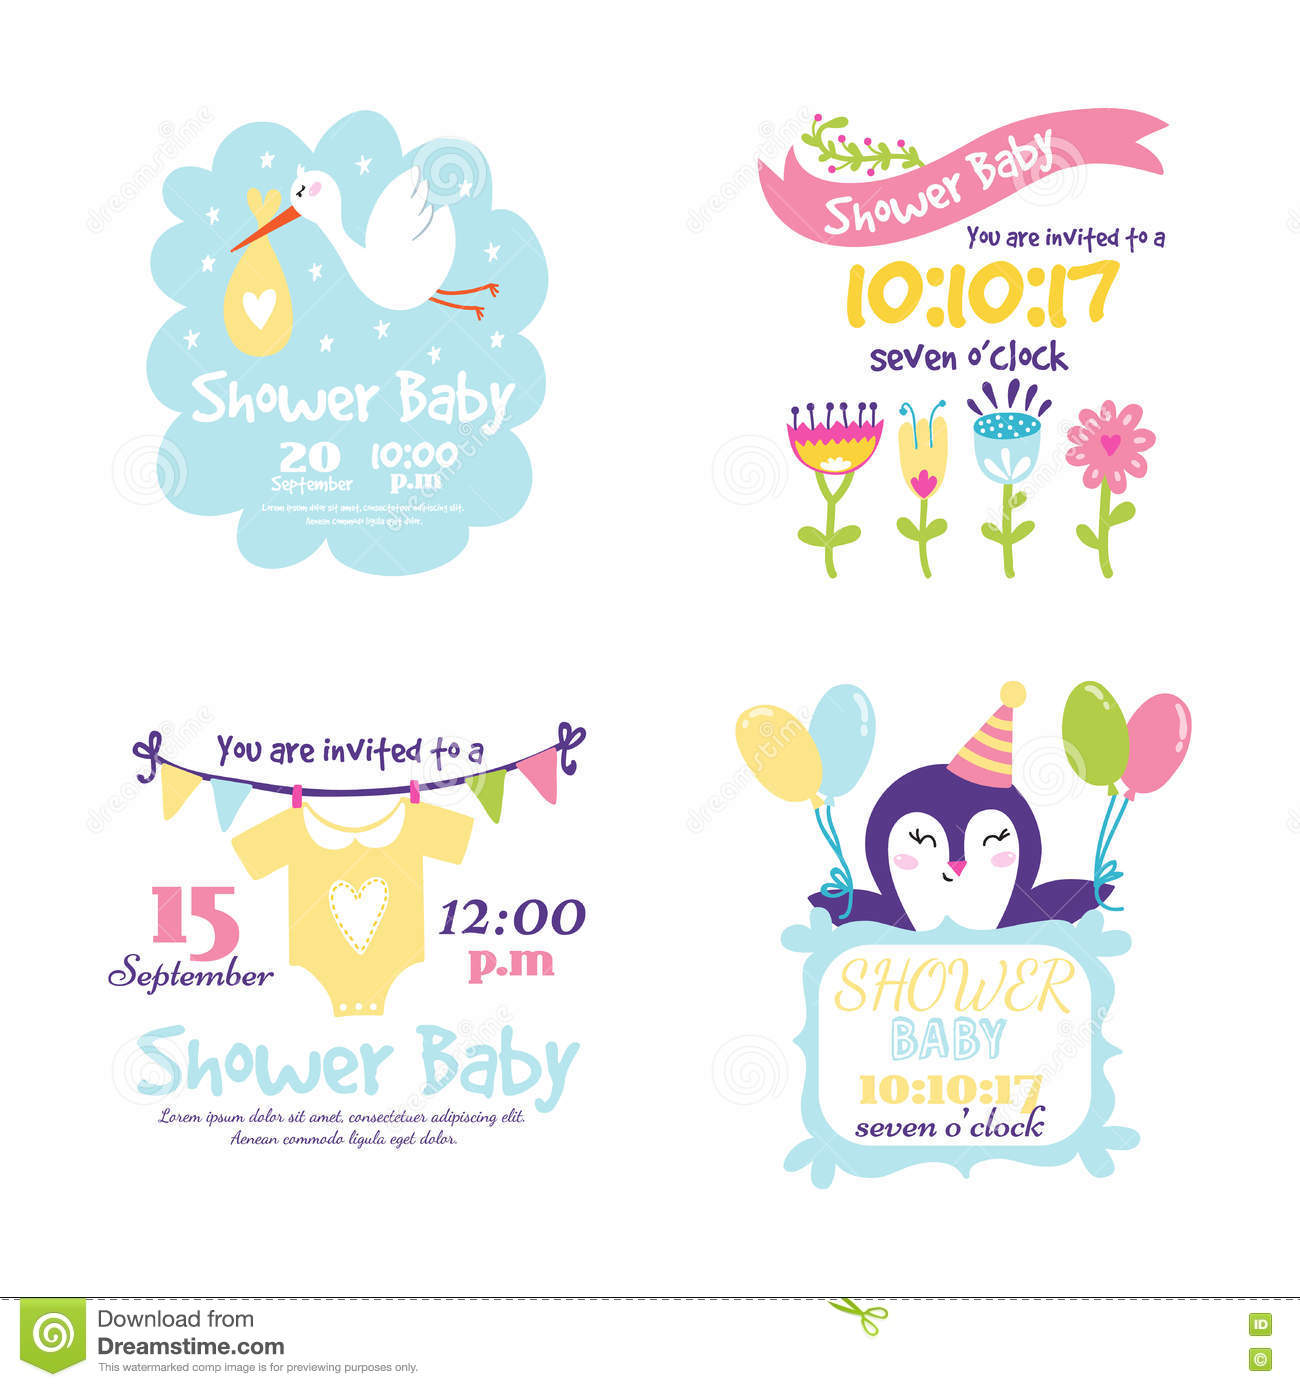 Invitation Party Wedding Free Vector Graphic On Pixabay: Baby Shower Invitation Vector Card Stock Vector